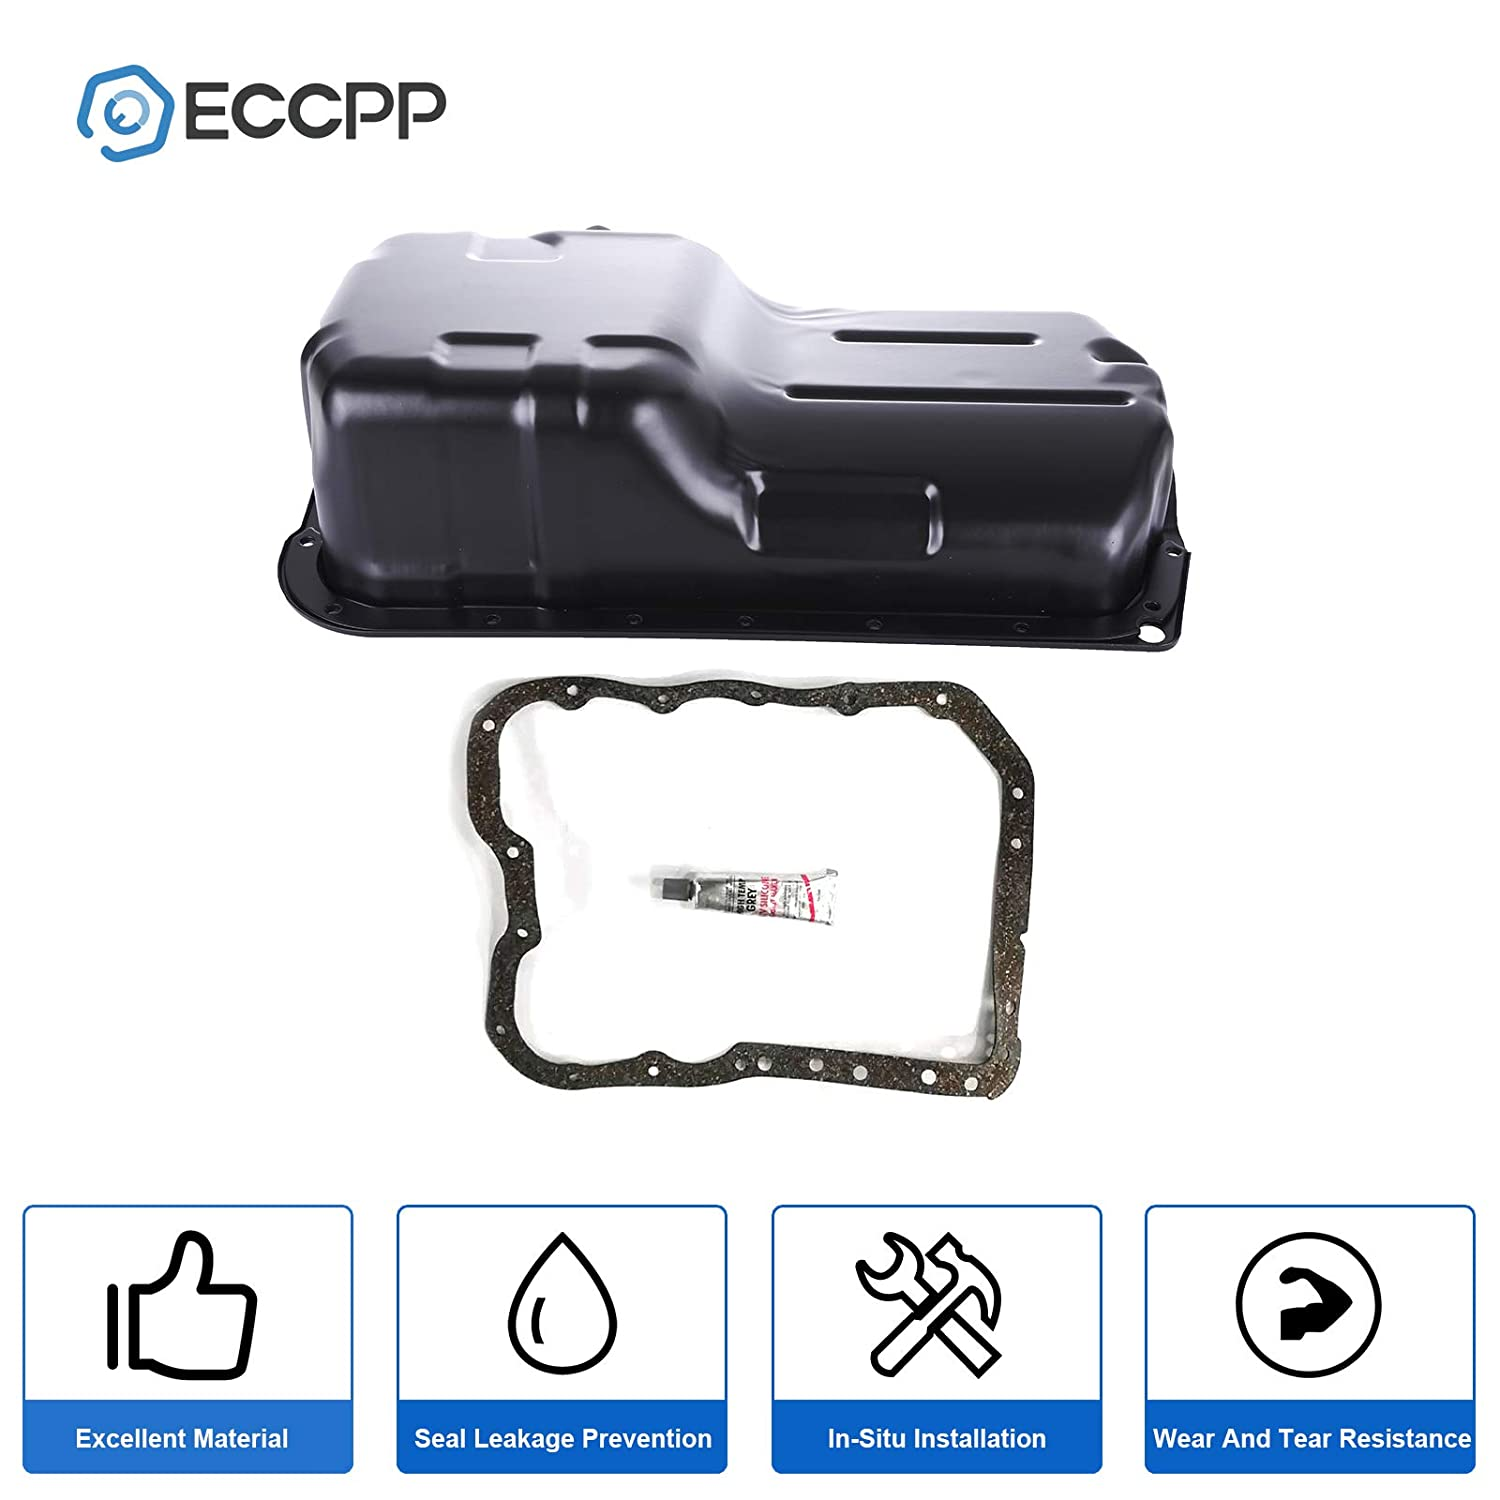 ECCPP Engine Oil Pan Drain Plug Kit Fit for 2012 Dodge Journey Oil Pan Gasket 1995-2005 Compatible with 264-361 Engine Oil Drain Pan